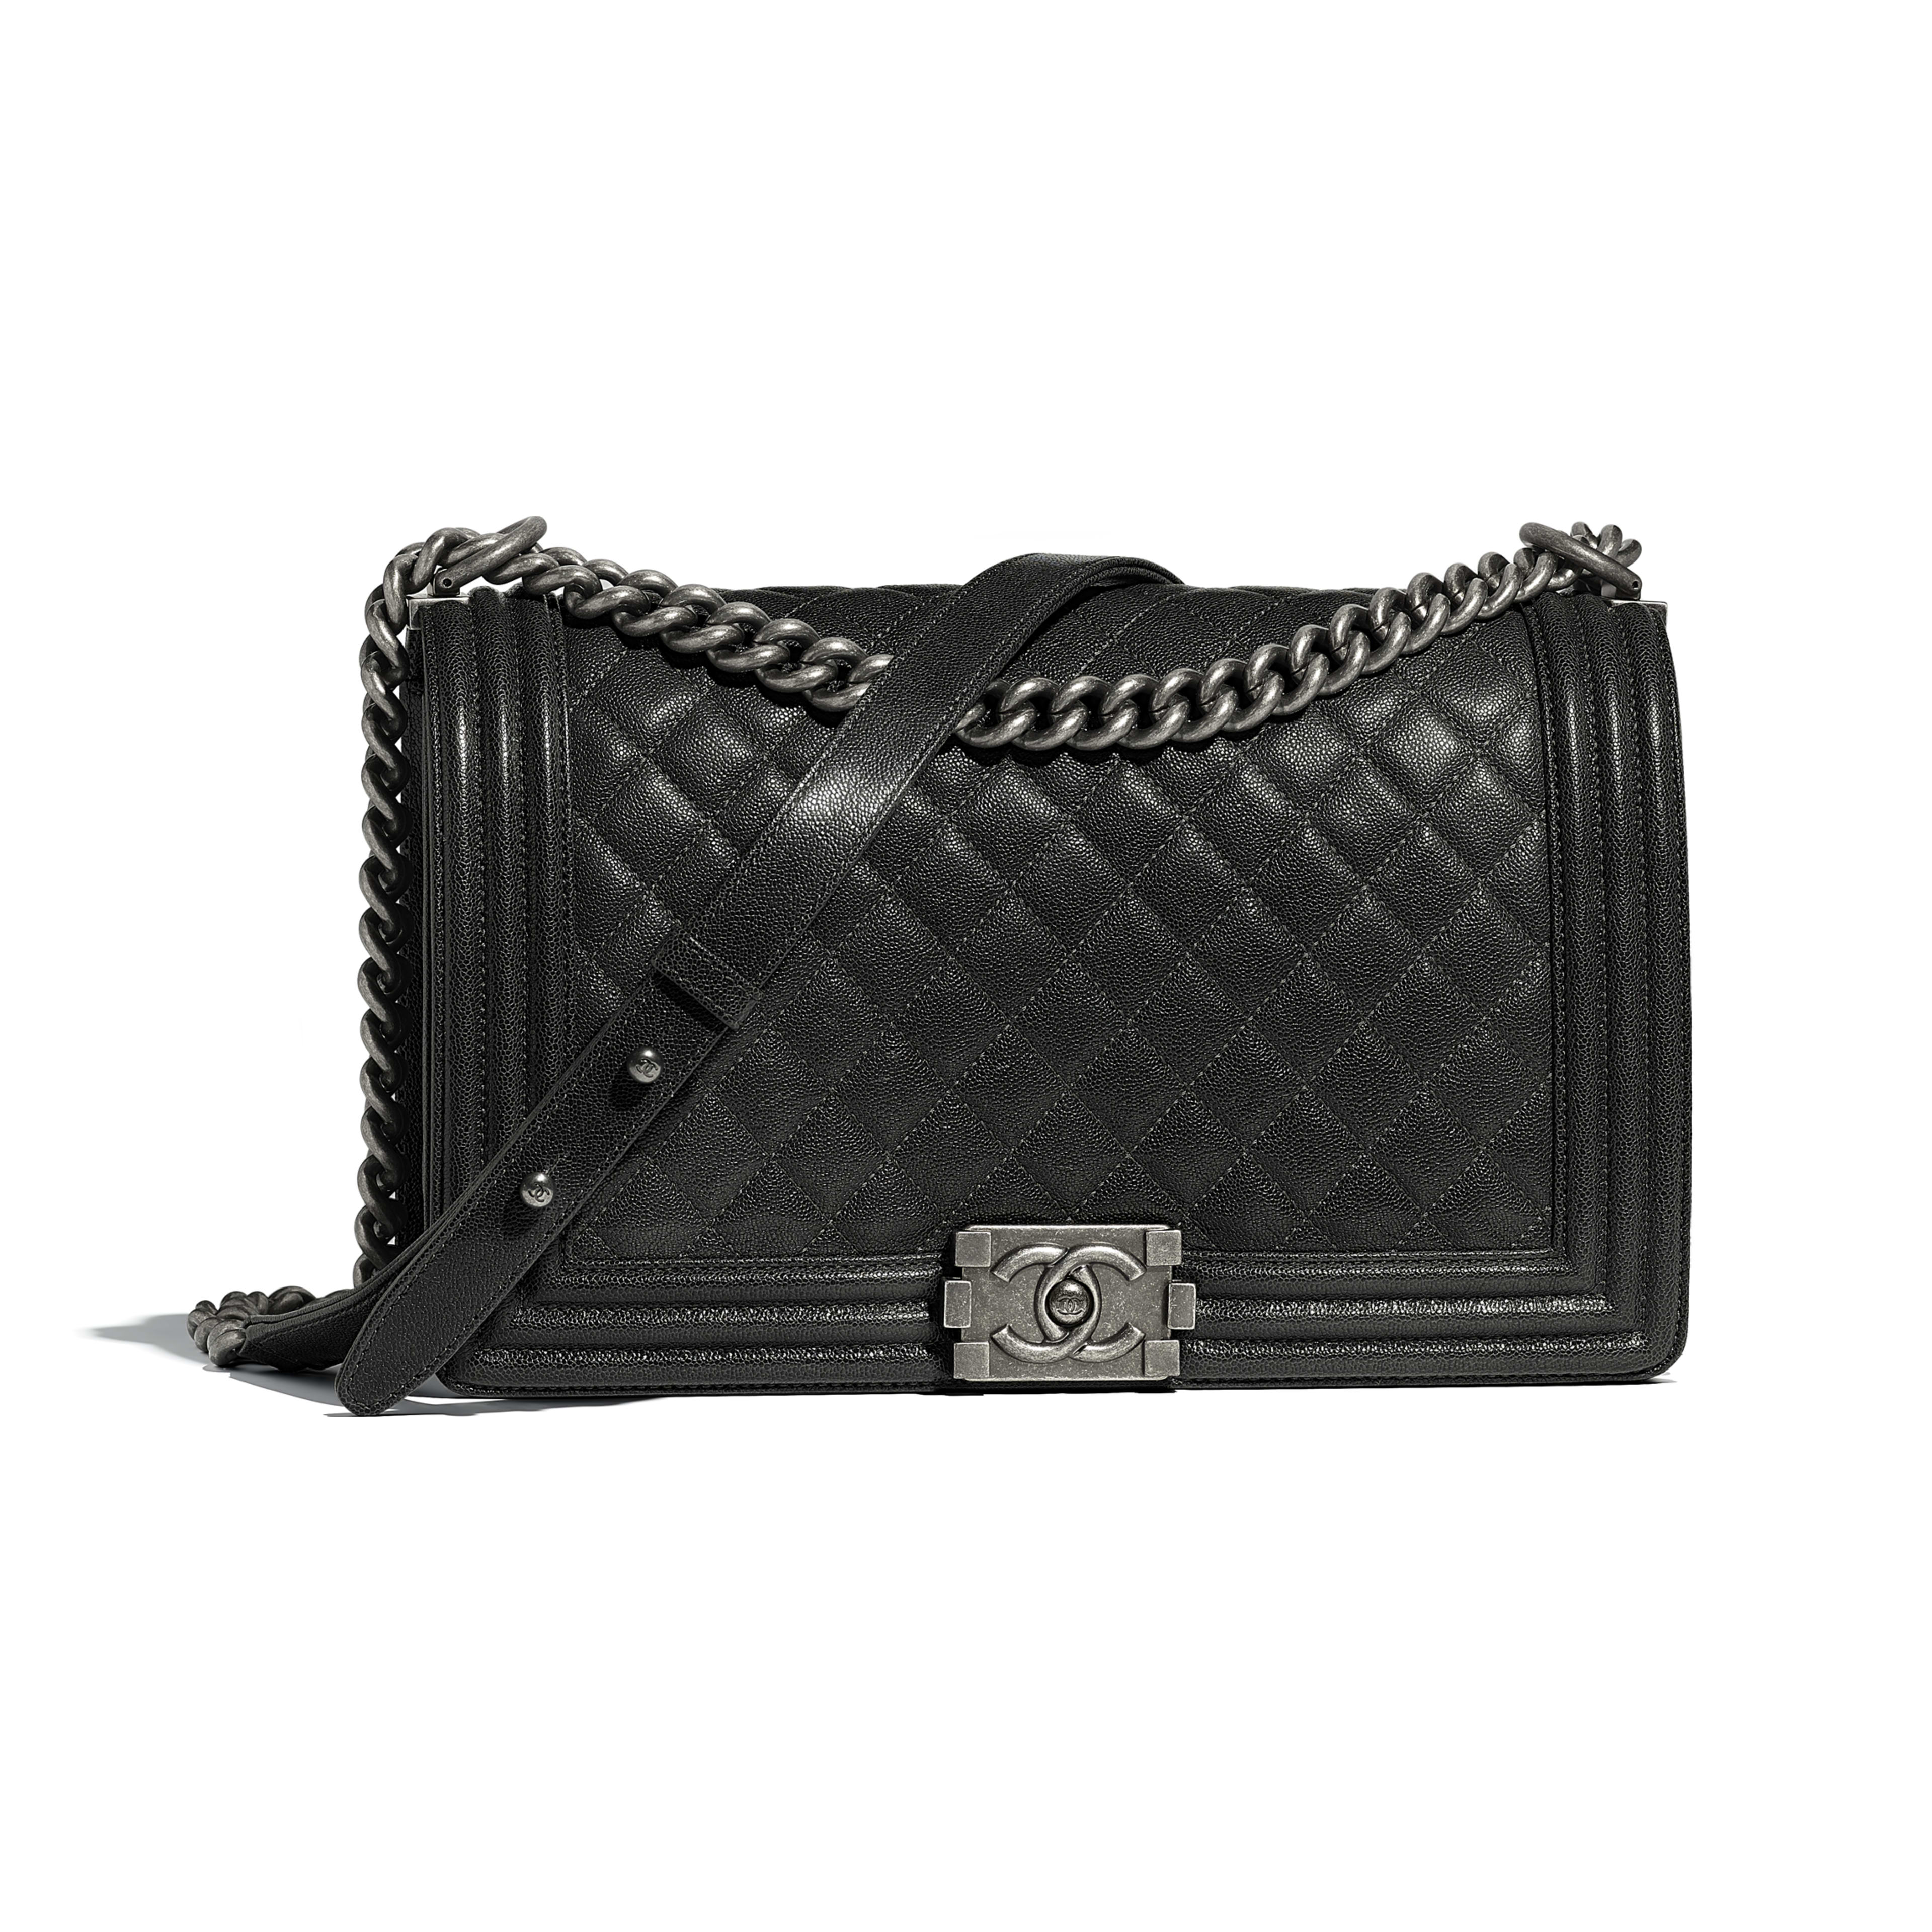 Large BOY CHANEL Handbag Grained Calfskin & Ruthenium-Finish Metal Charcoal -                                  view 1 - see full sized version